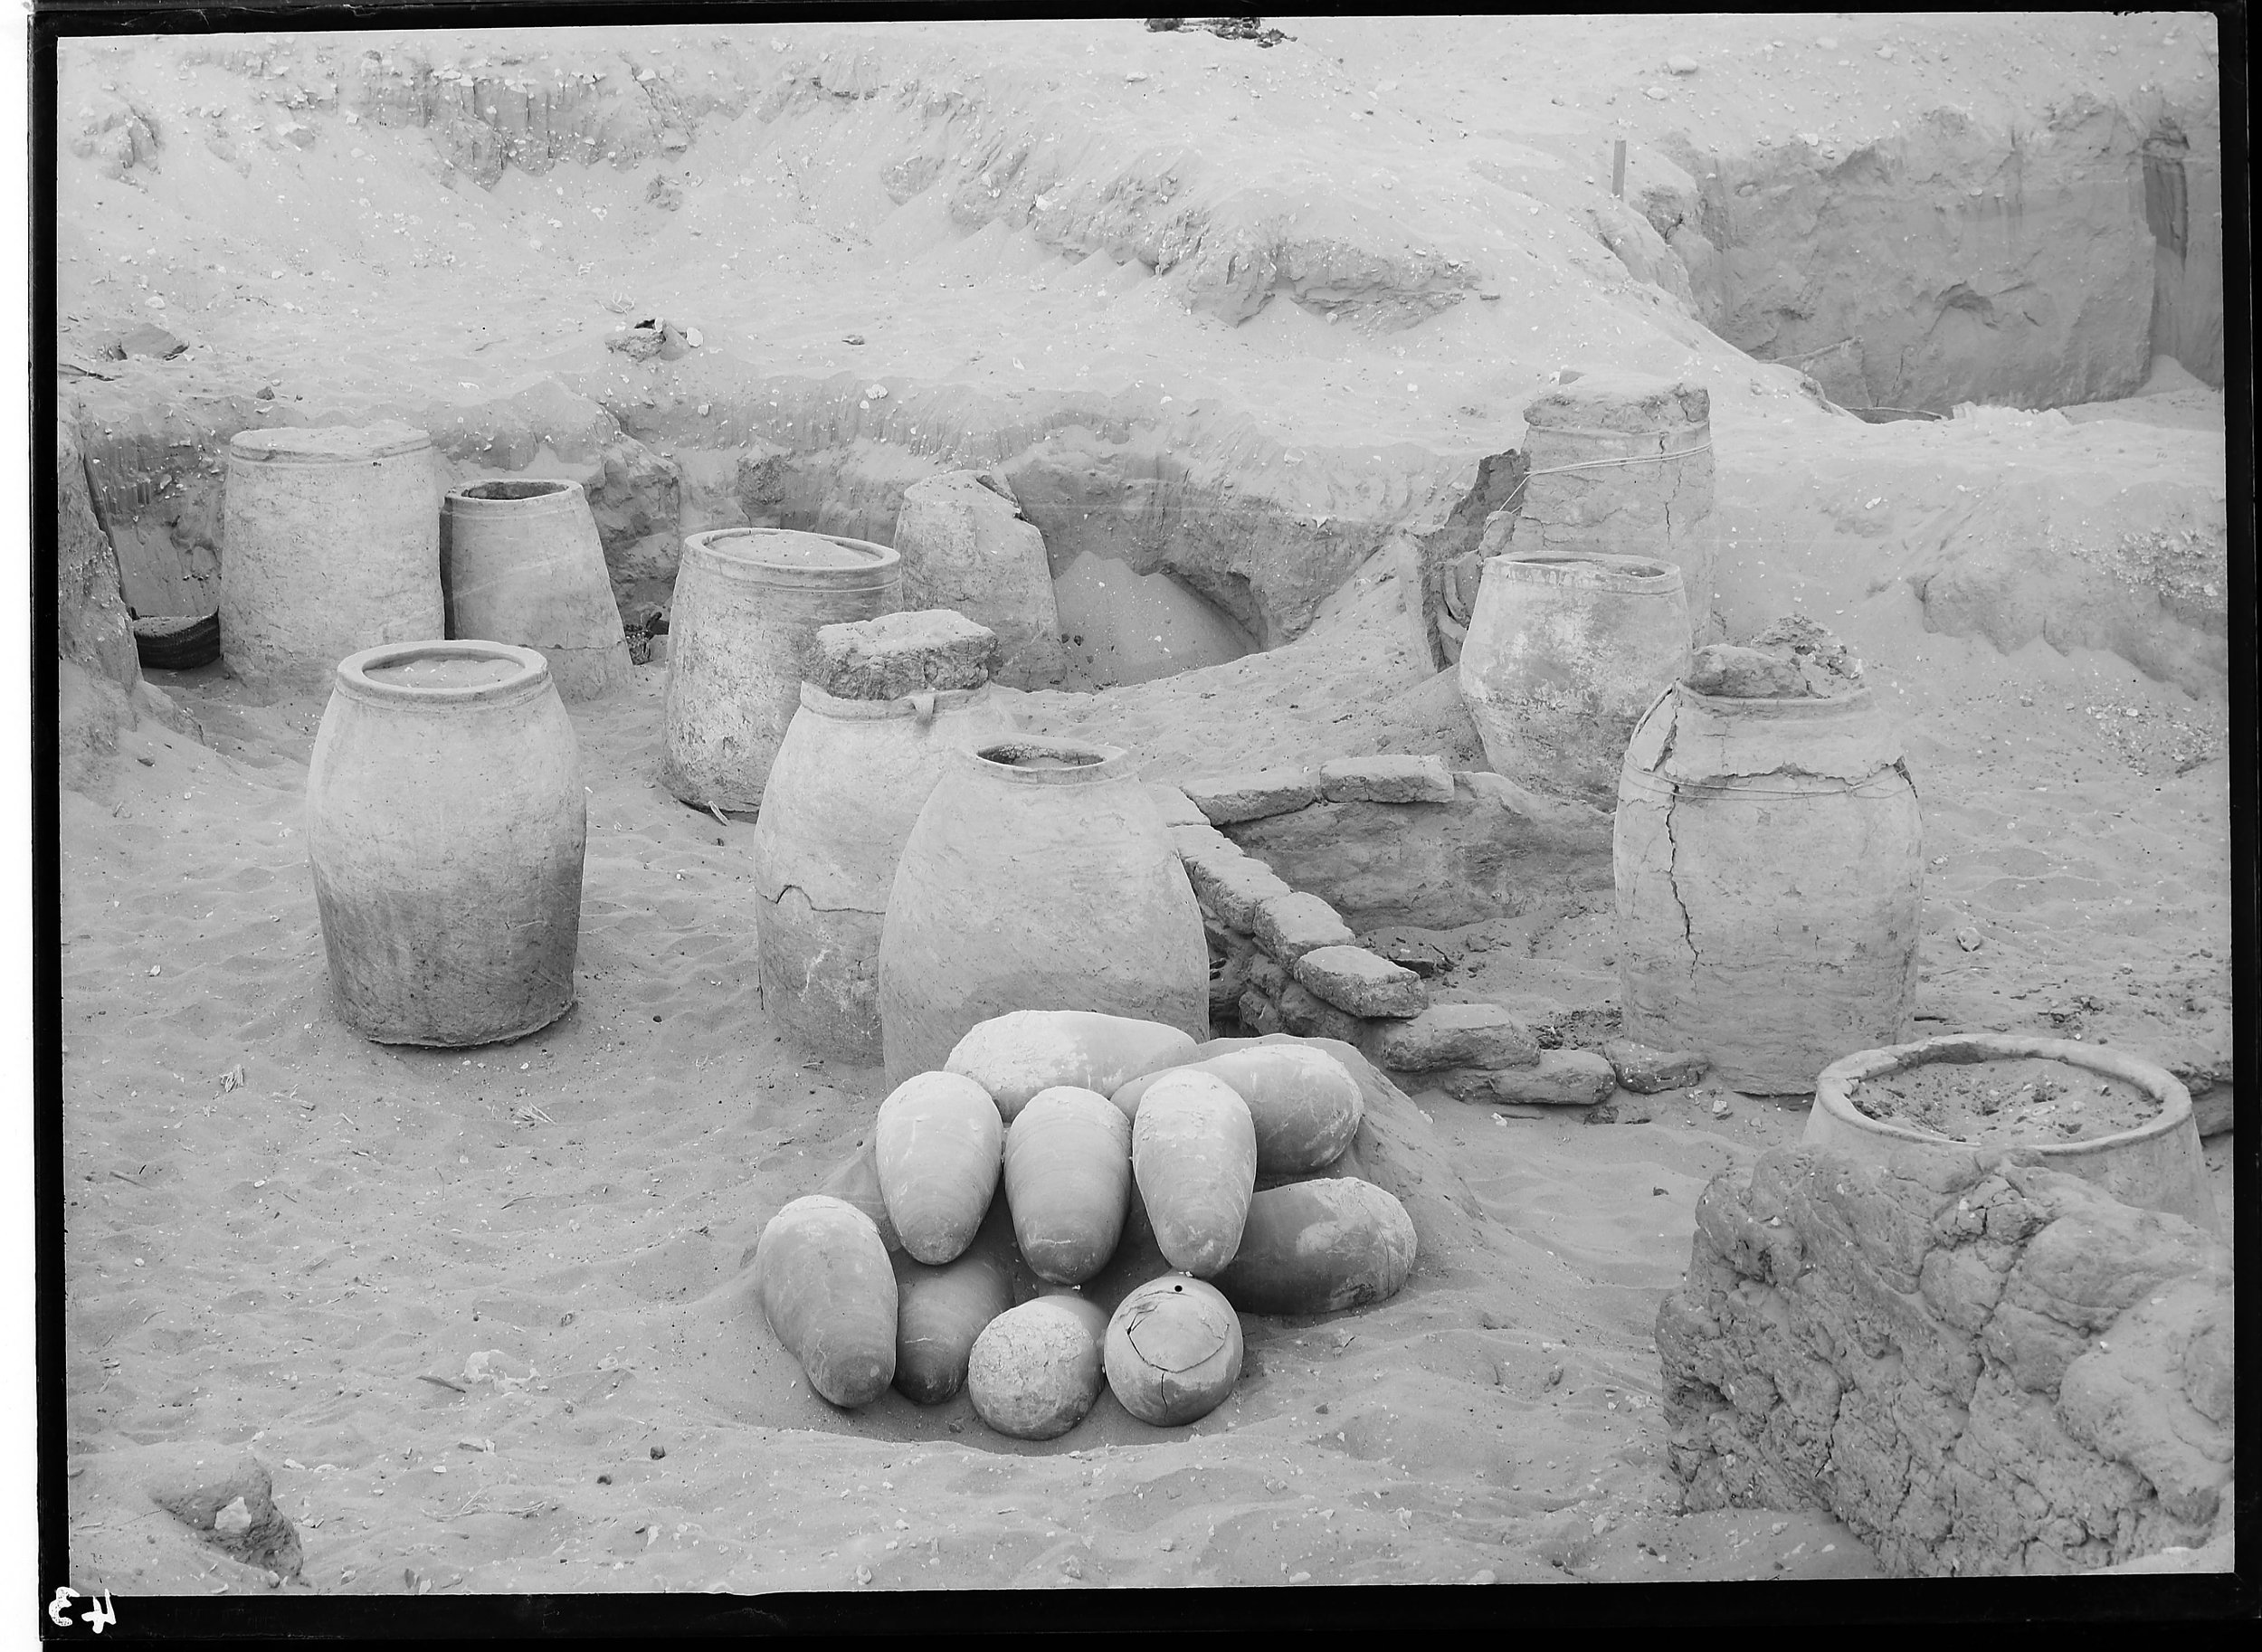 Fig. 7. Examples of excavated pottery vessels containing ibis burials from W.L.S. Loat's excavations in the early 20th Century. Photo courtesy of the  Egypt Exploration Society